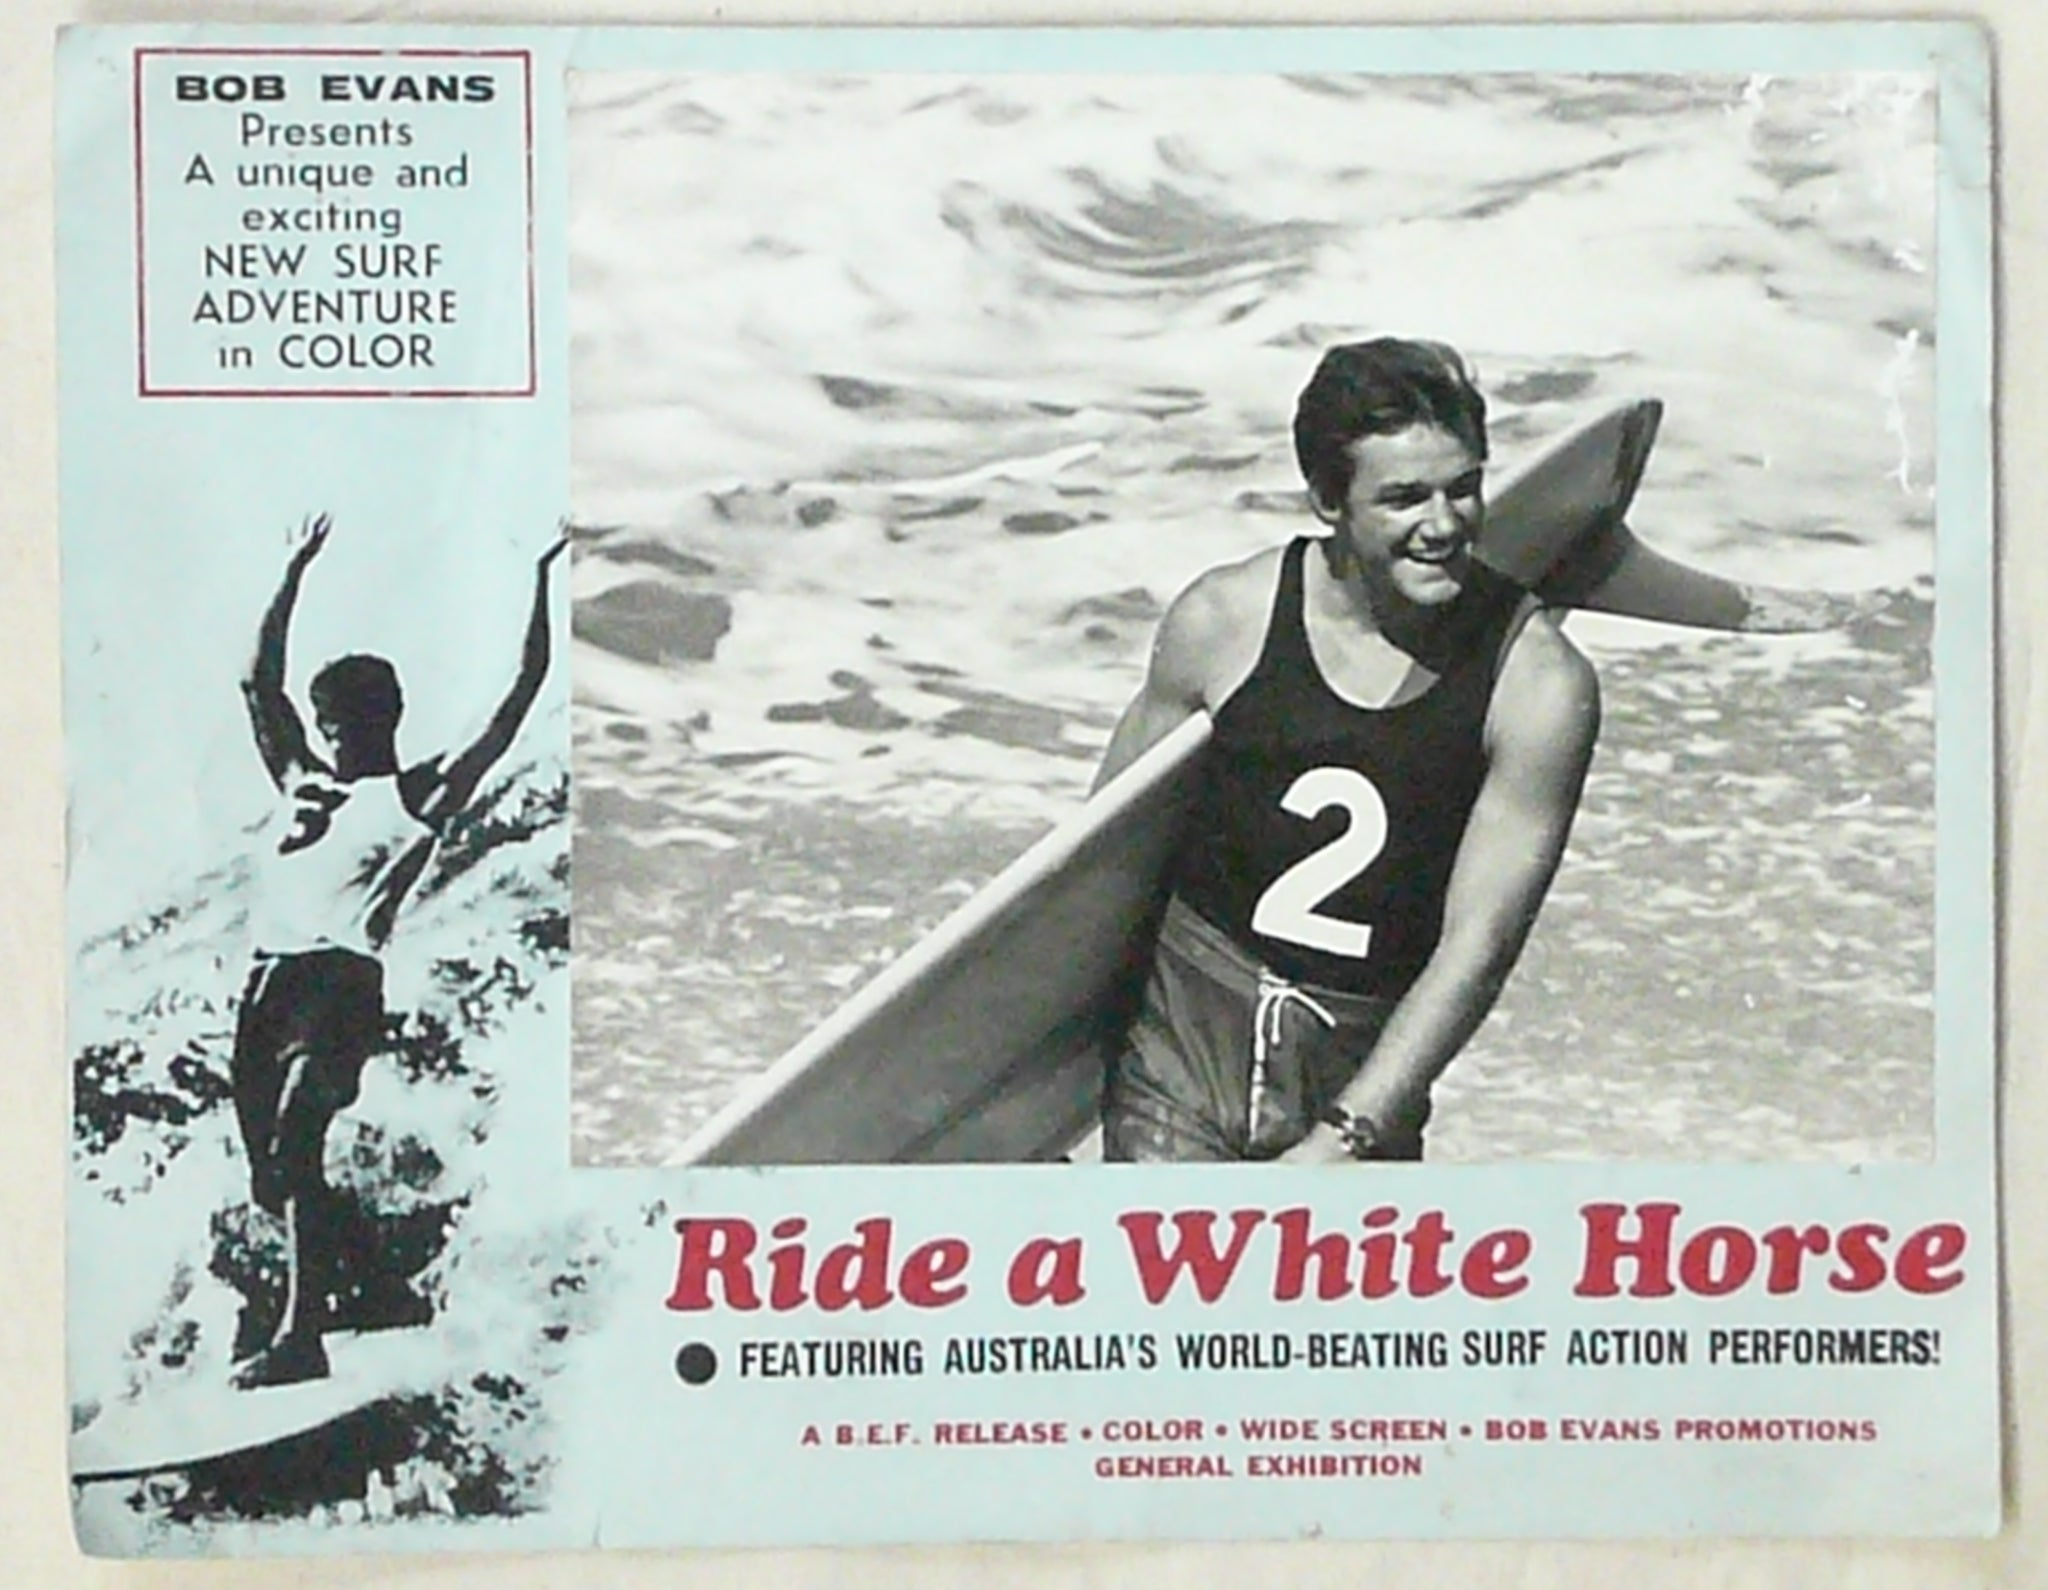 Ride a White Horse lobby card.